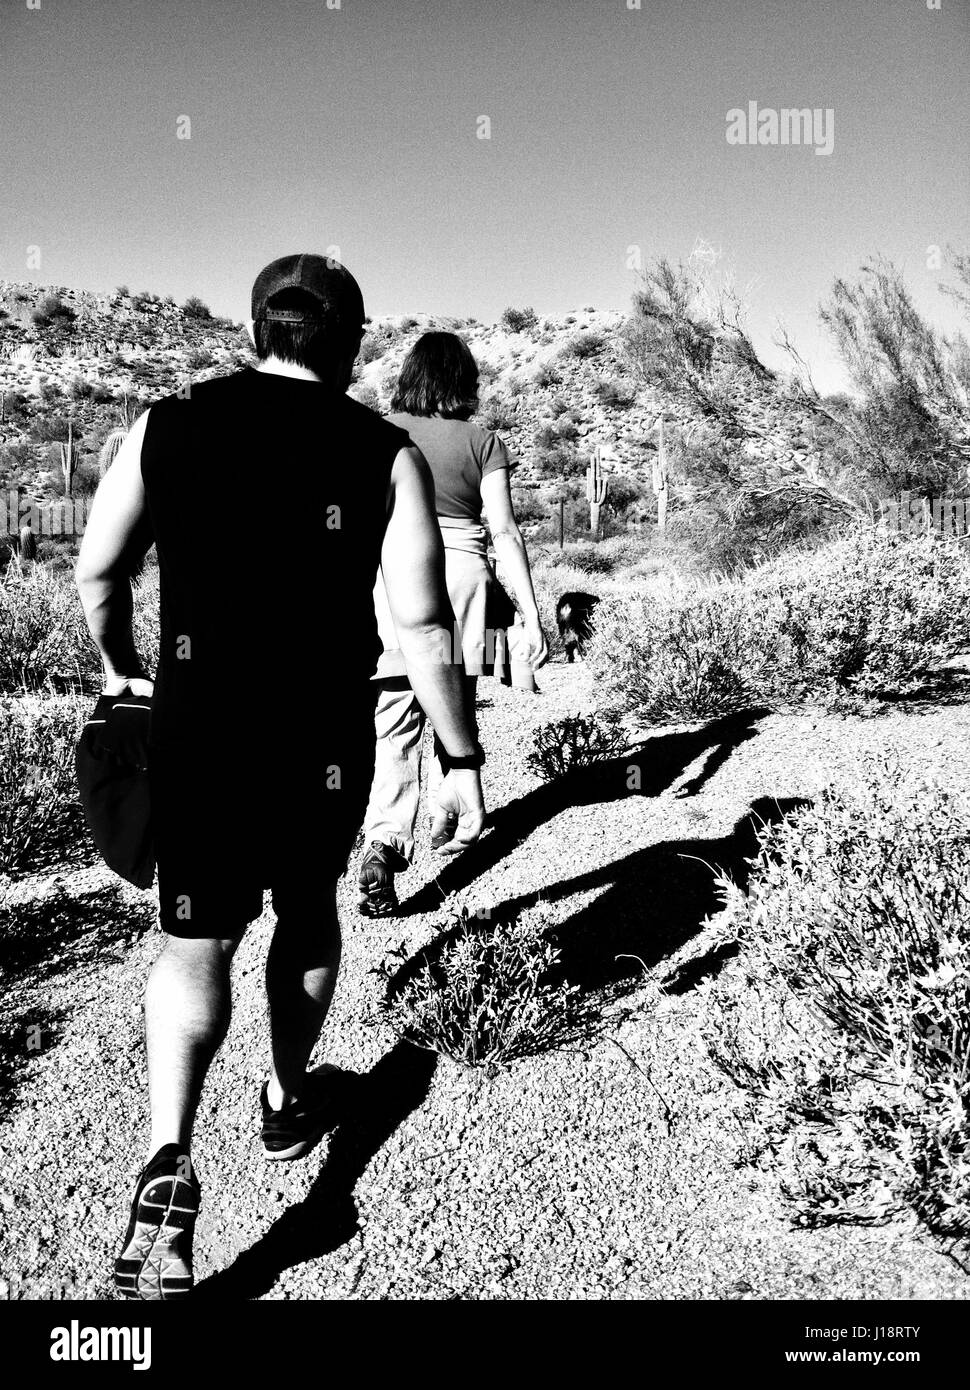 Black and white trail hiking - Stock Image